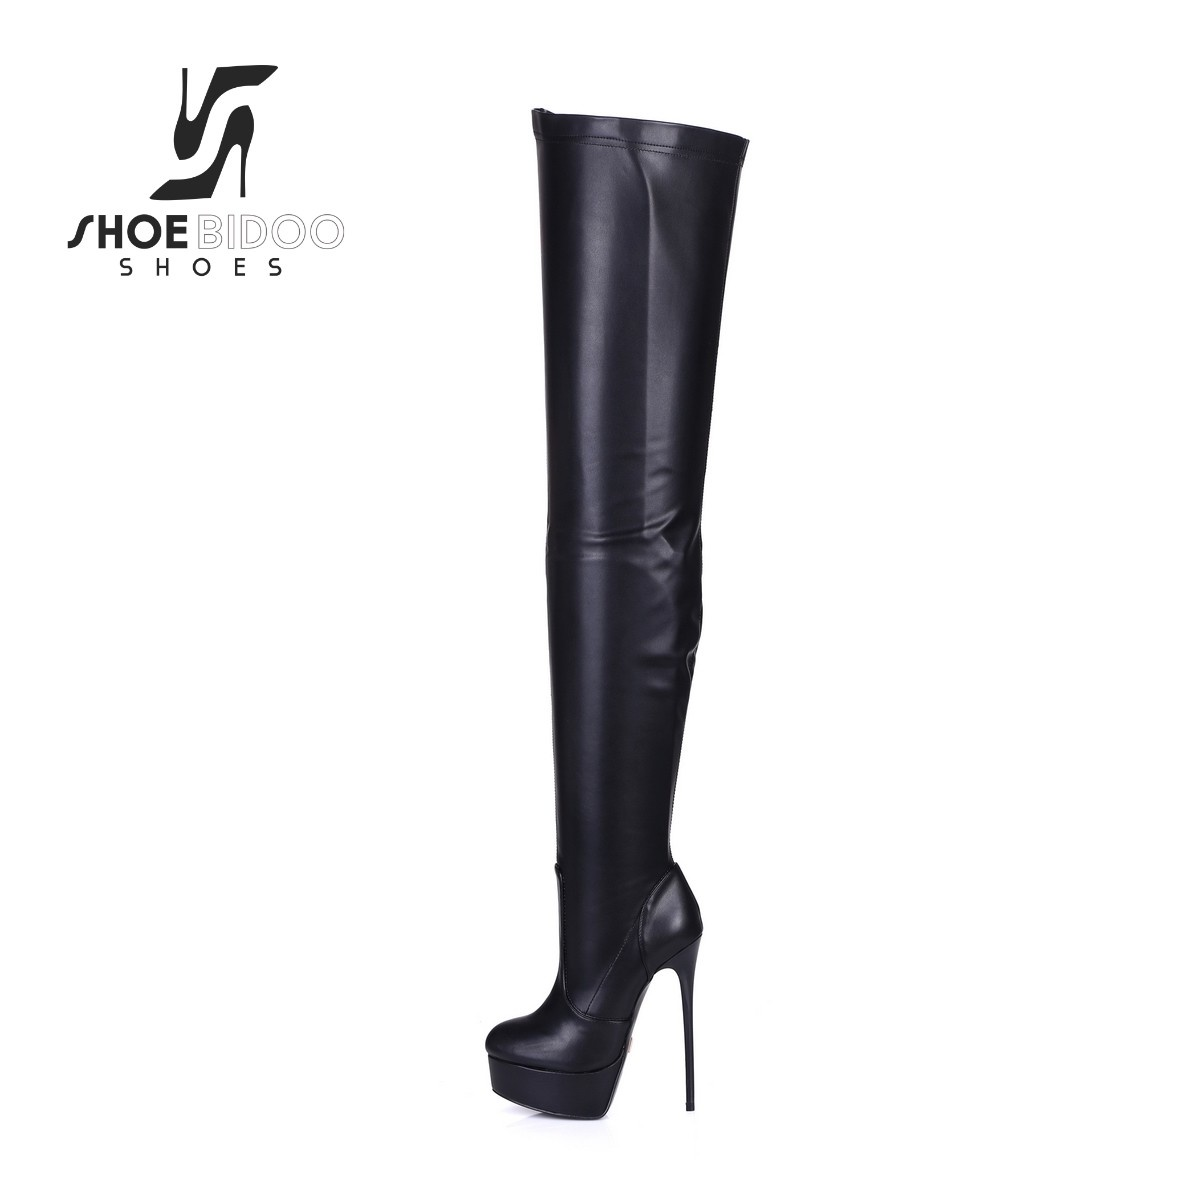 a28e744995b Black Giaro high 16cm heeled thigh boots - Shoebidoo Shoes